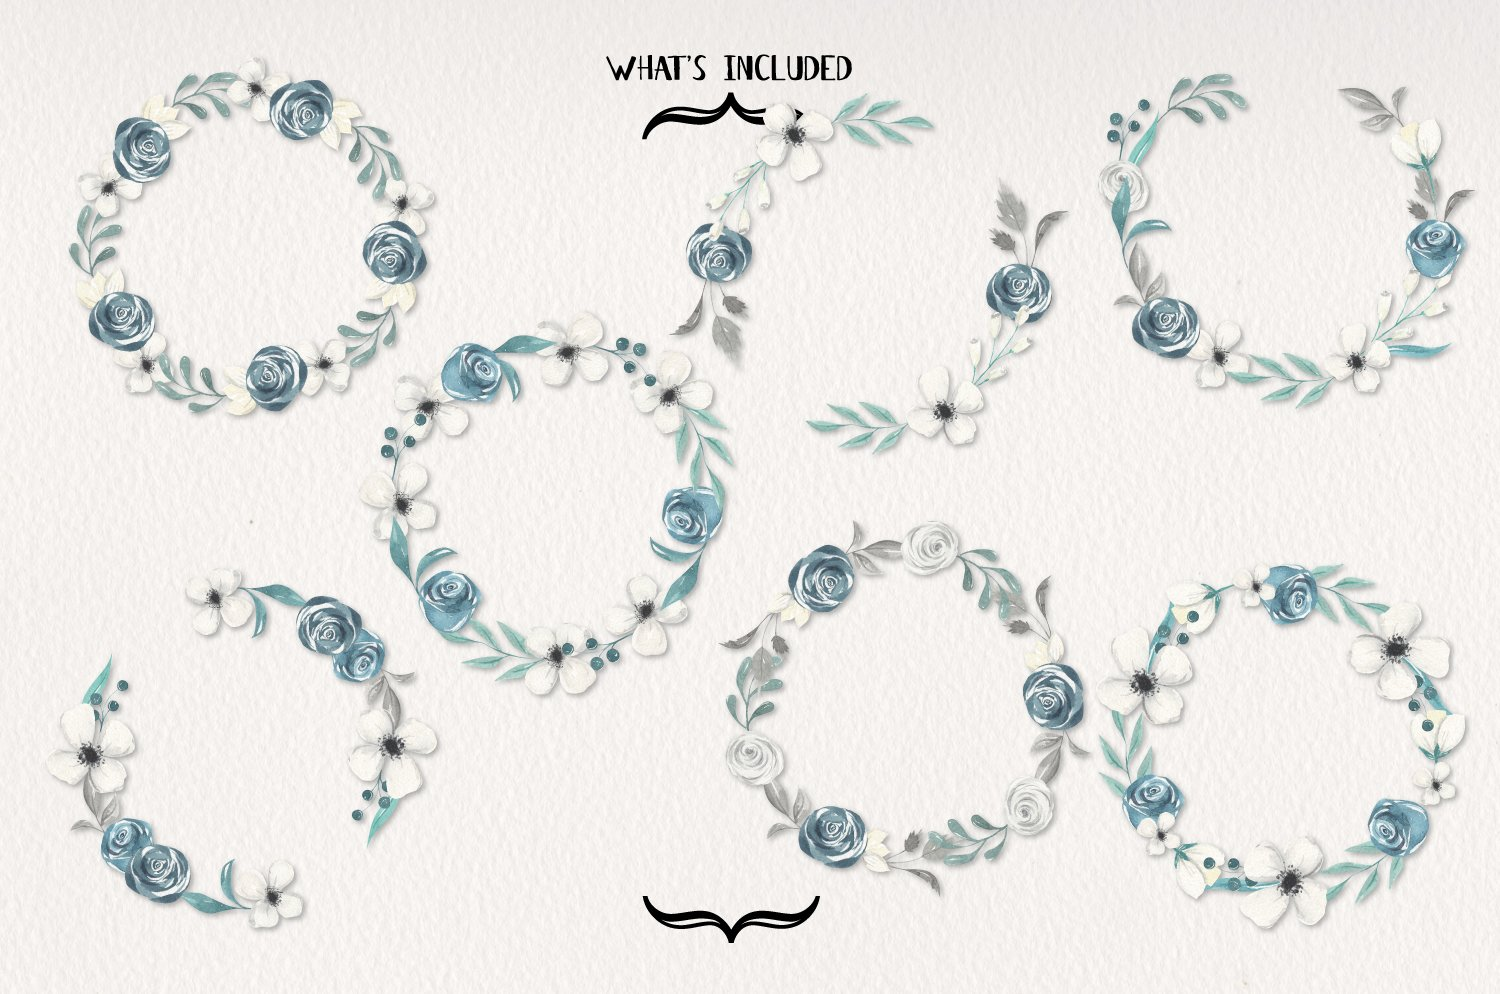 Navy & White 7 Wreaths Watercolor Blooms Garlands Florals example image 2